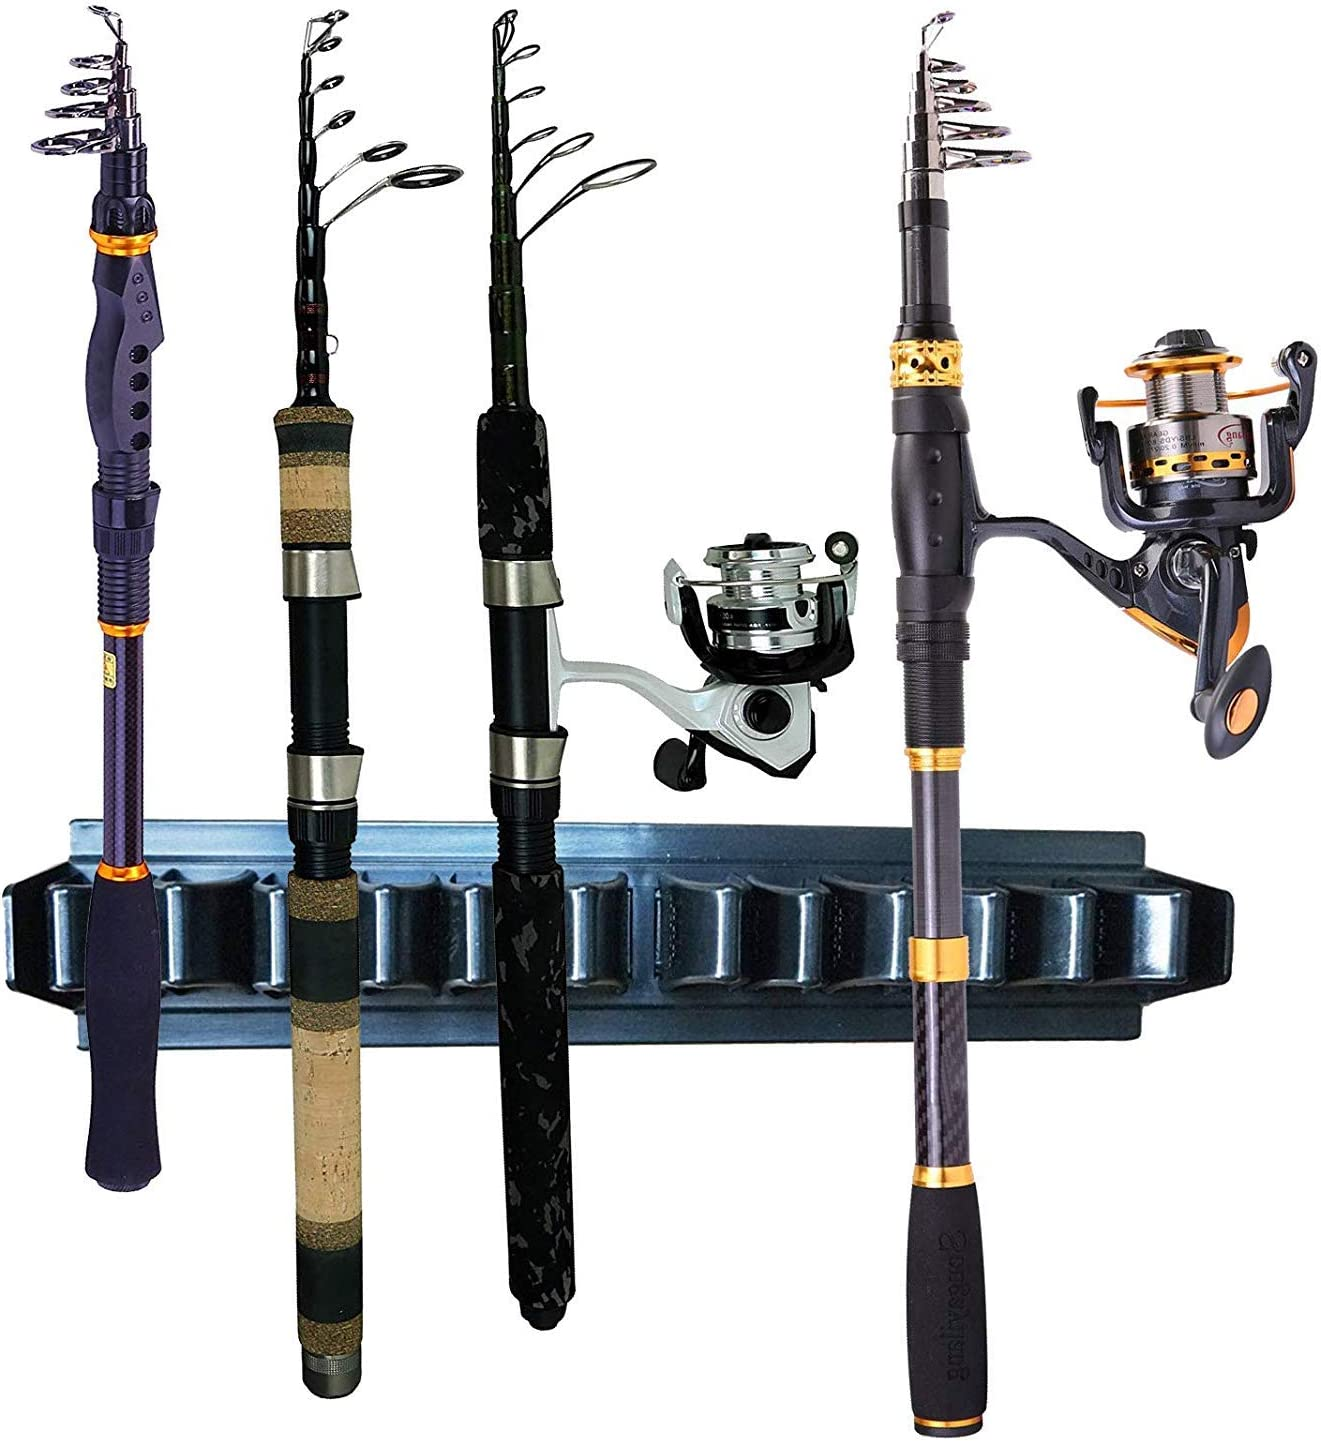 Pmsanzay Direct stock discount Fishing sold out Rod Storage Hold Rack 10-Rod Pole